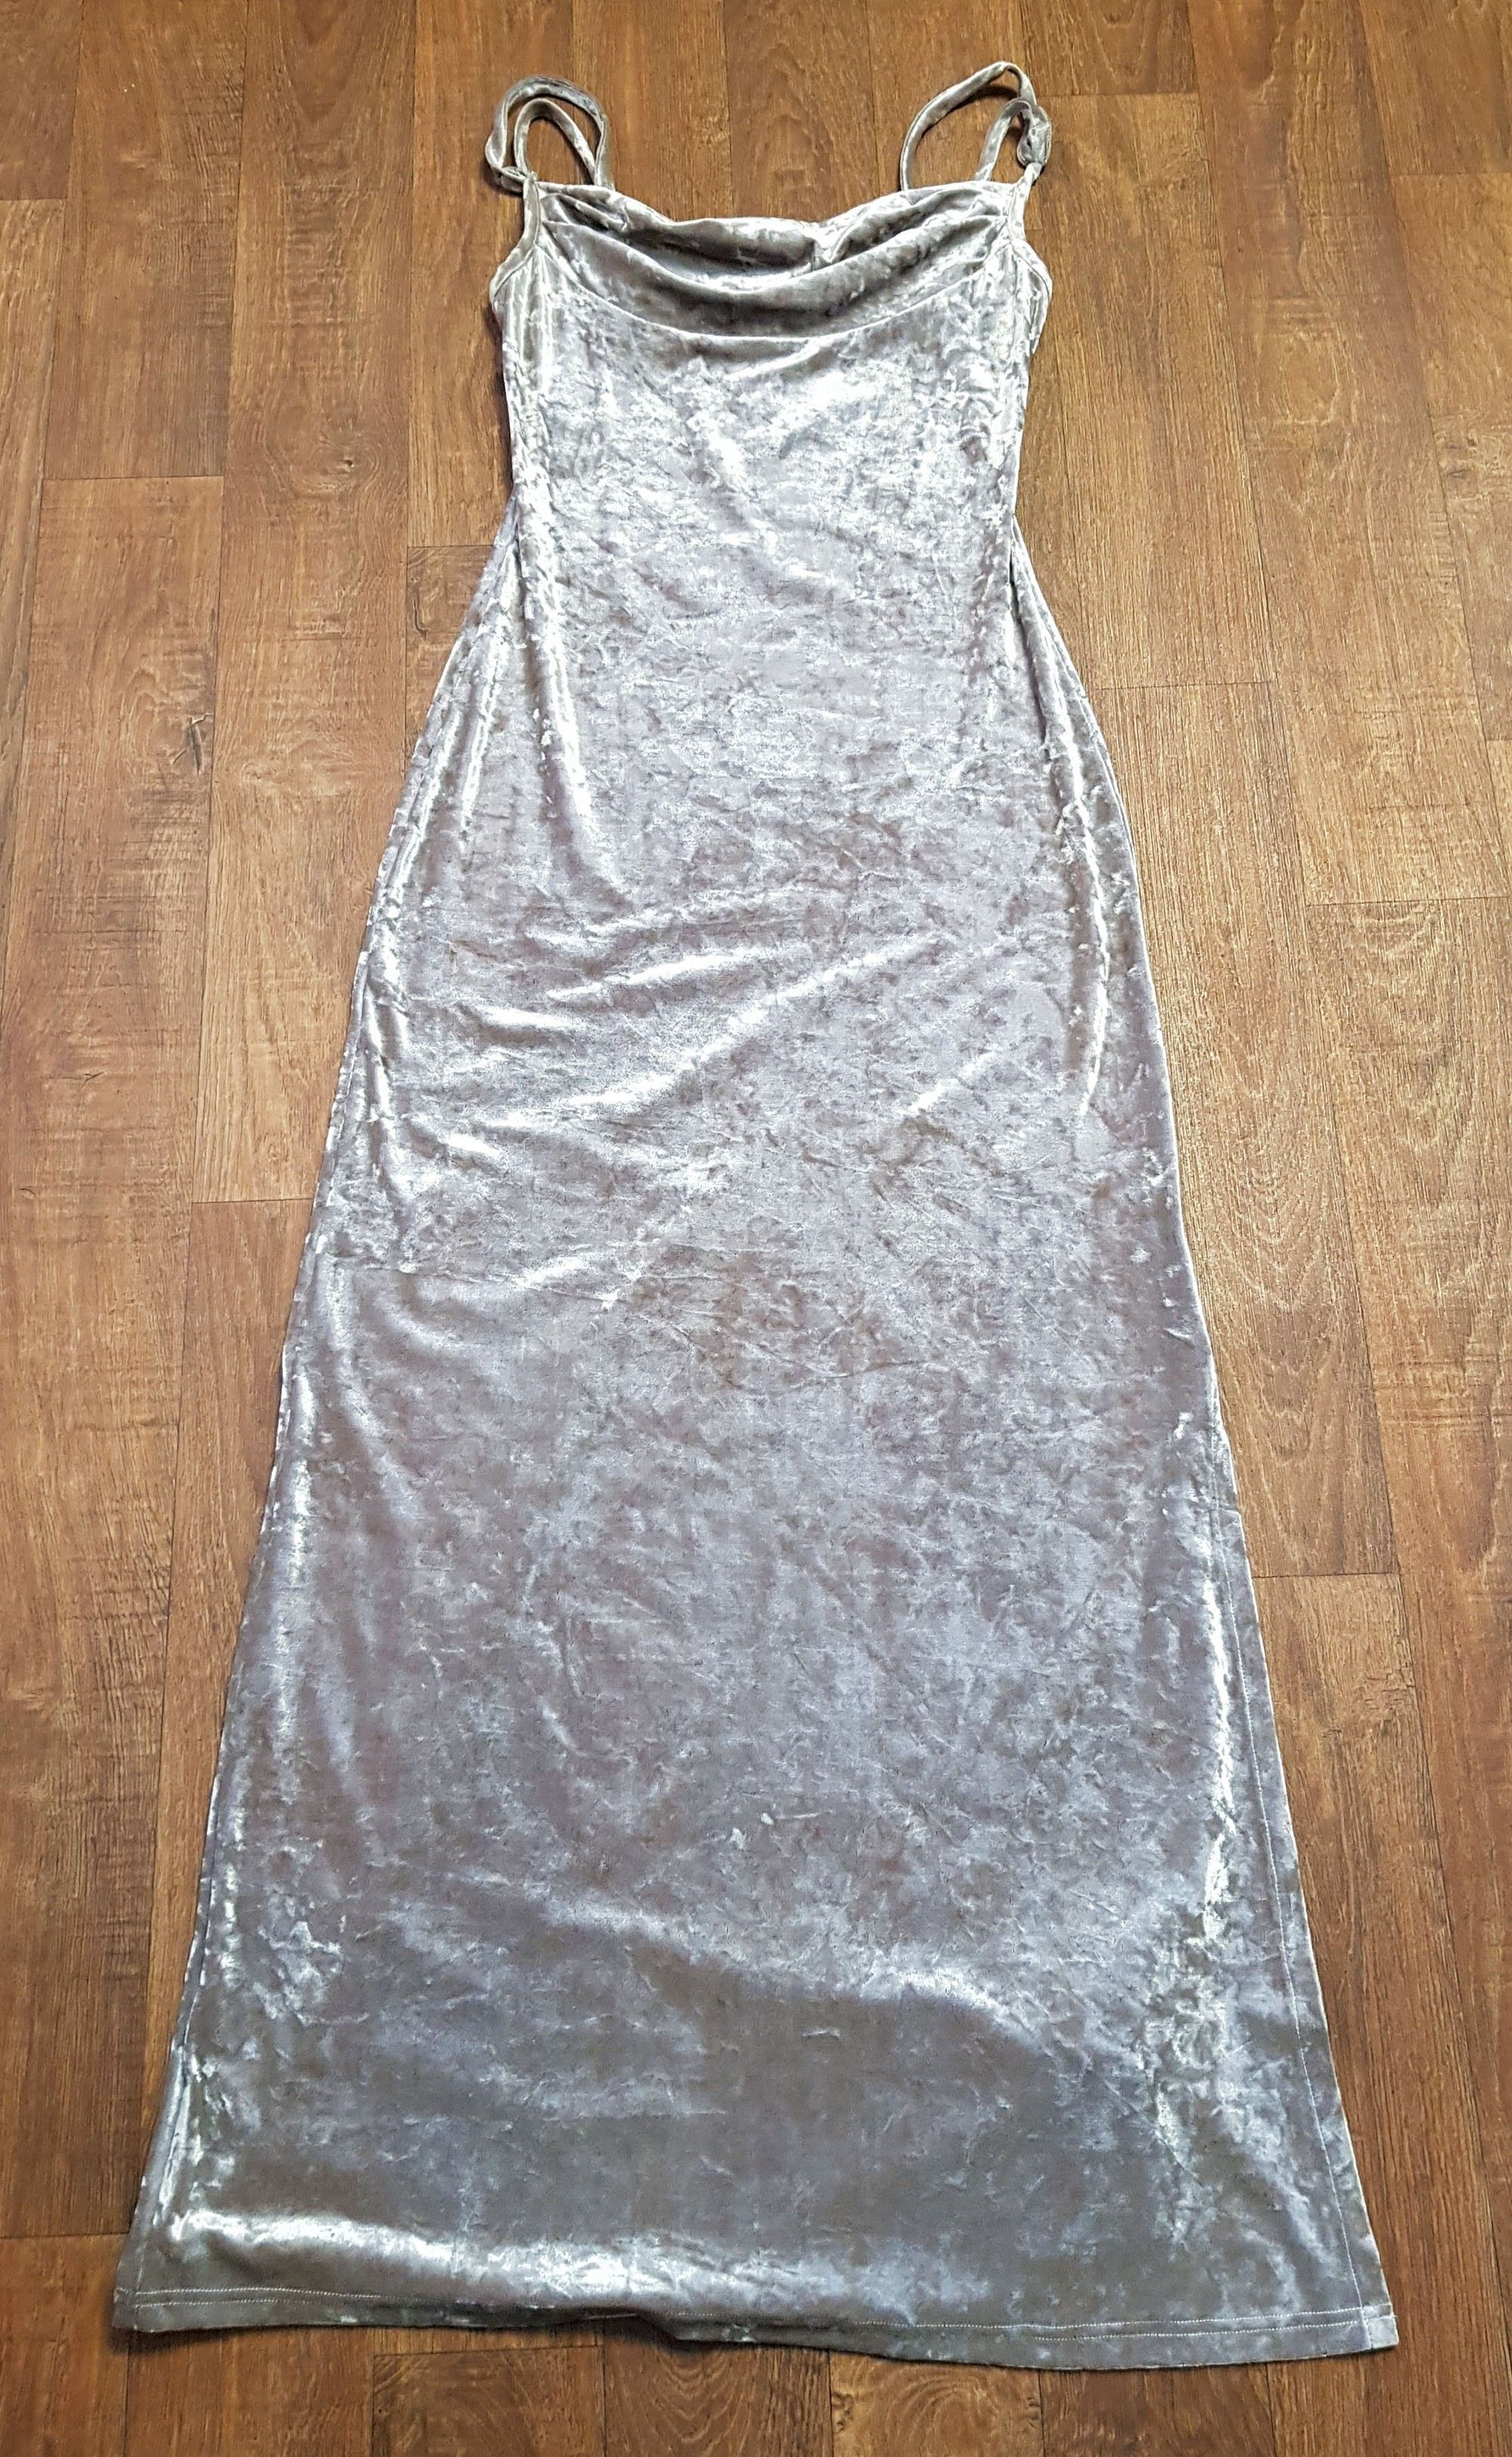 Designer Vintage 1970s Biba Silver Crushed Velvet Maxi Dress UK Size 10/12